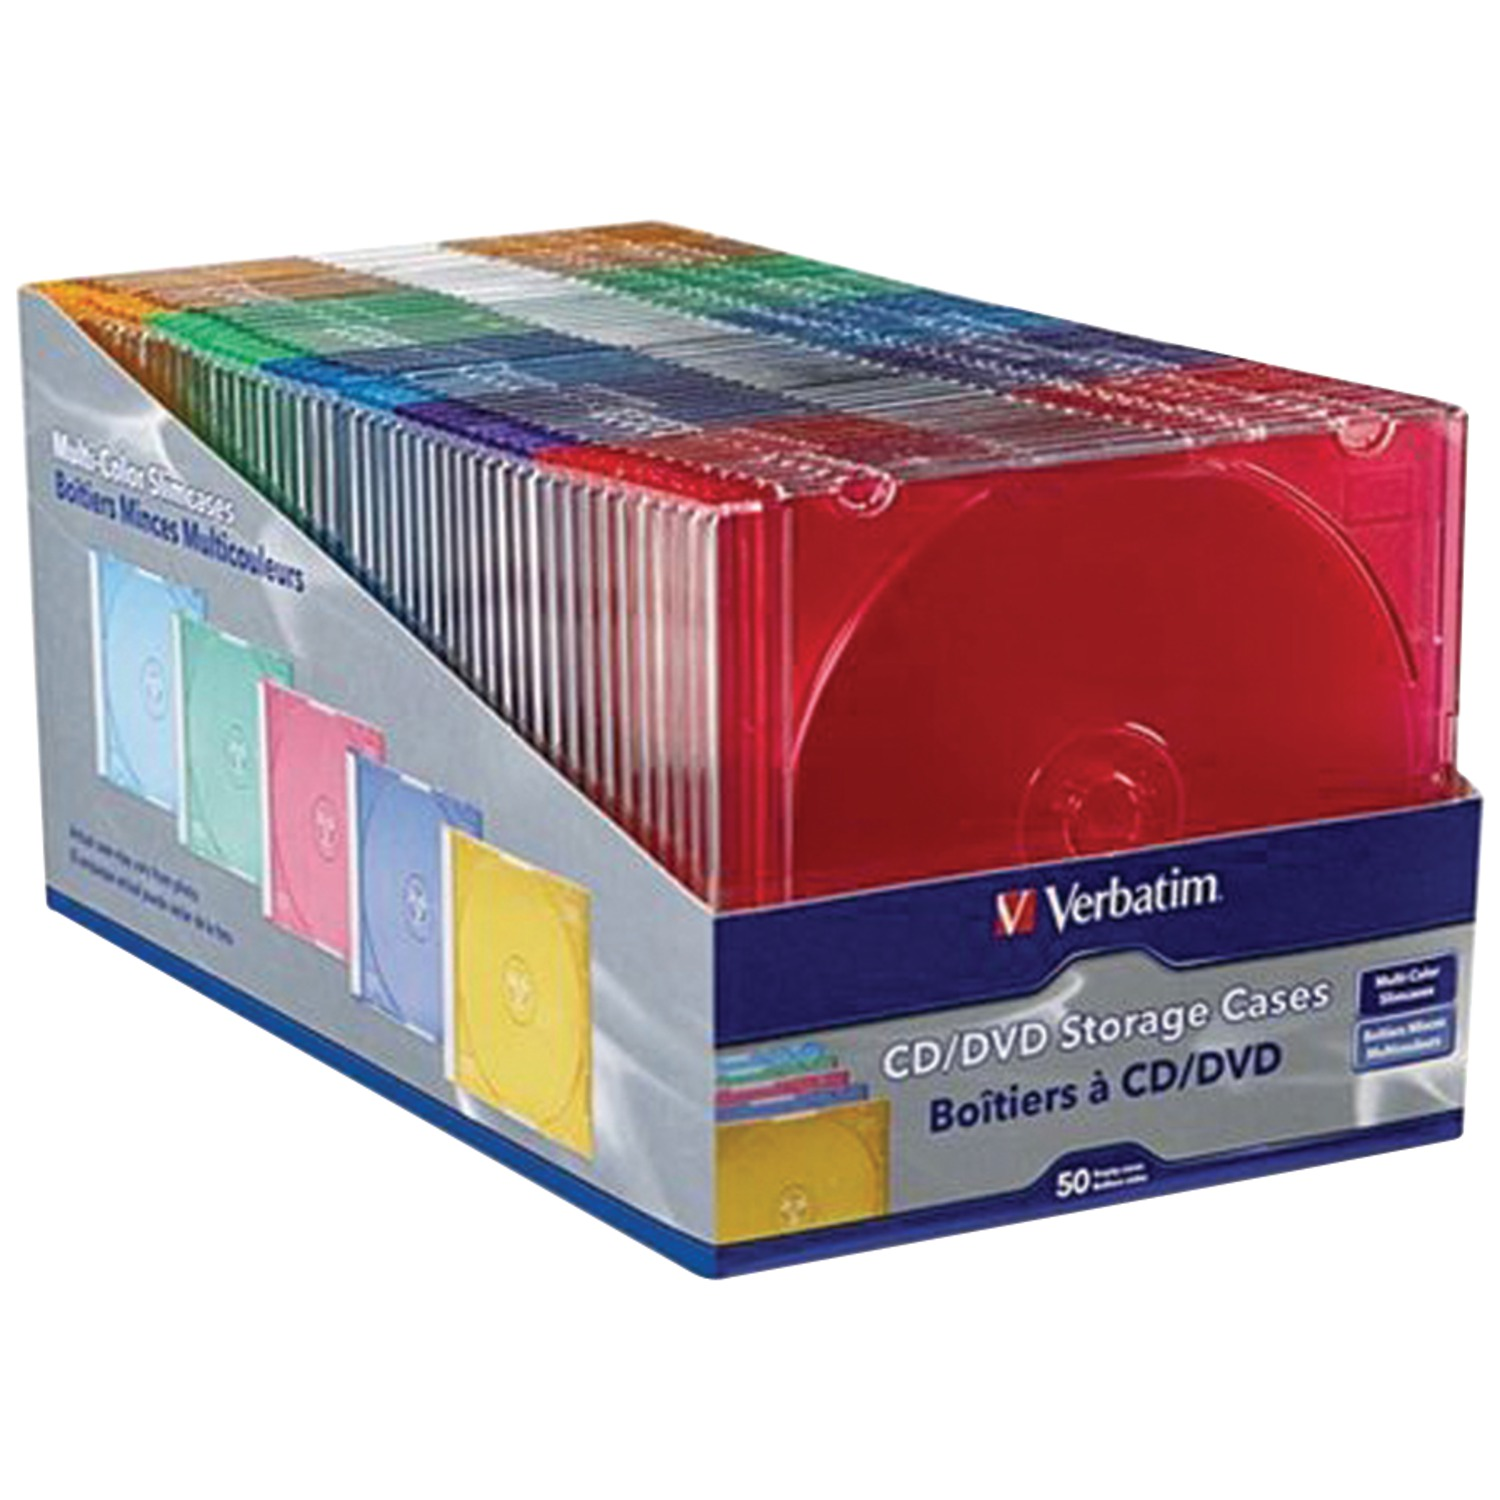 Verbatim 94178 Color Cd/dvd Slim Cases, 50 Pk